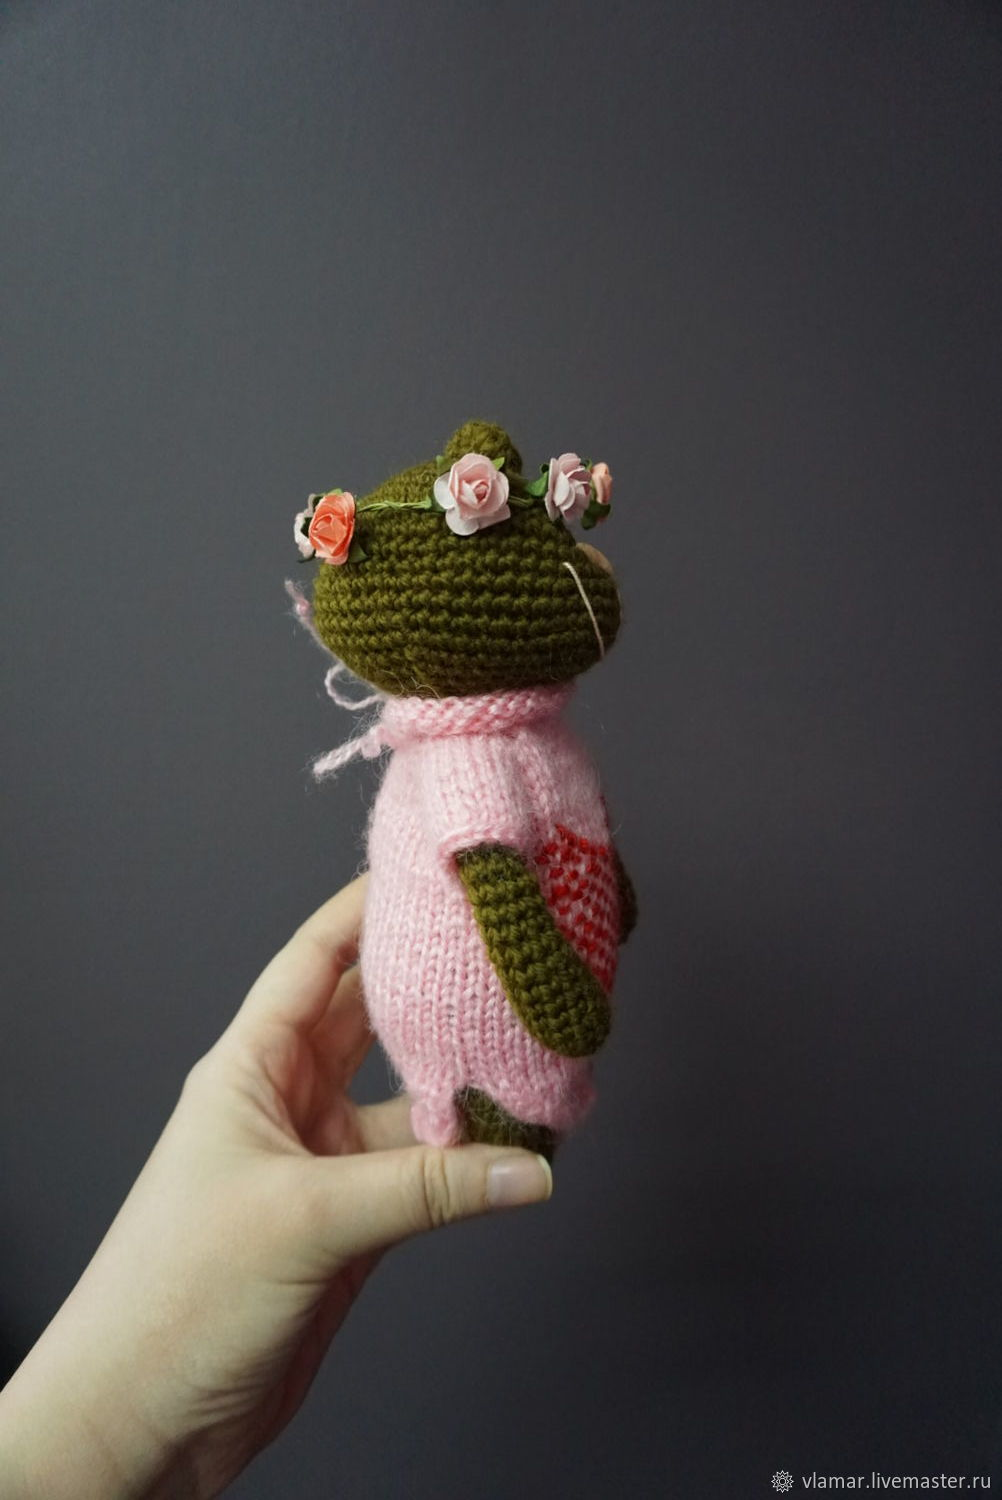 Knit Teddy Bear In Wreath Shop Online On Livemaster With Shipping Wrist Pink Order Vlamar